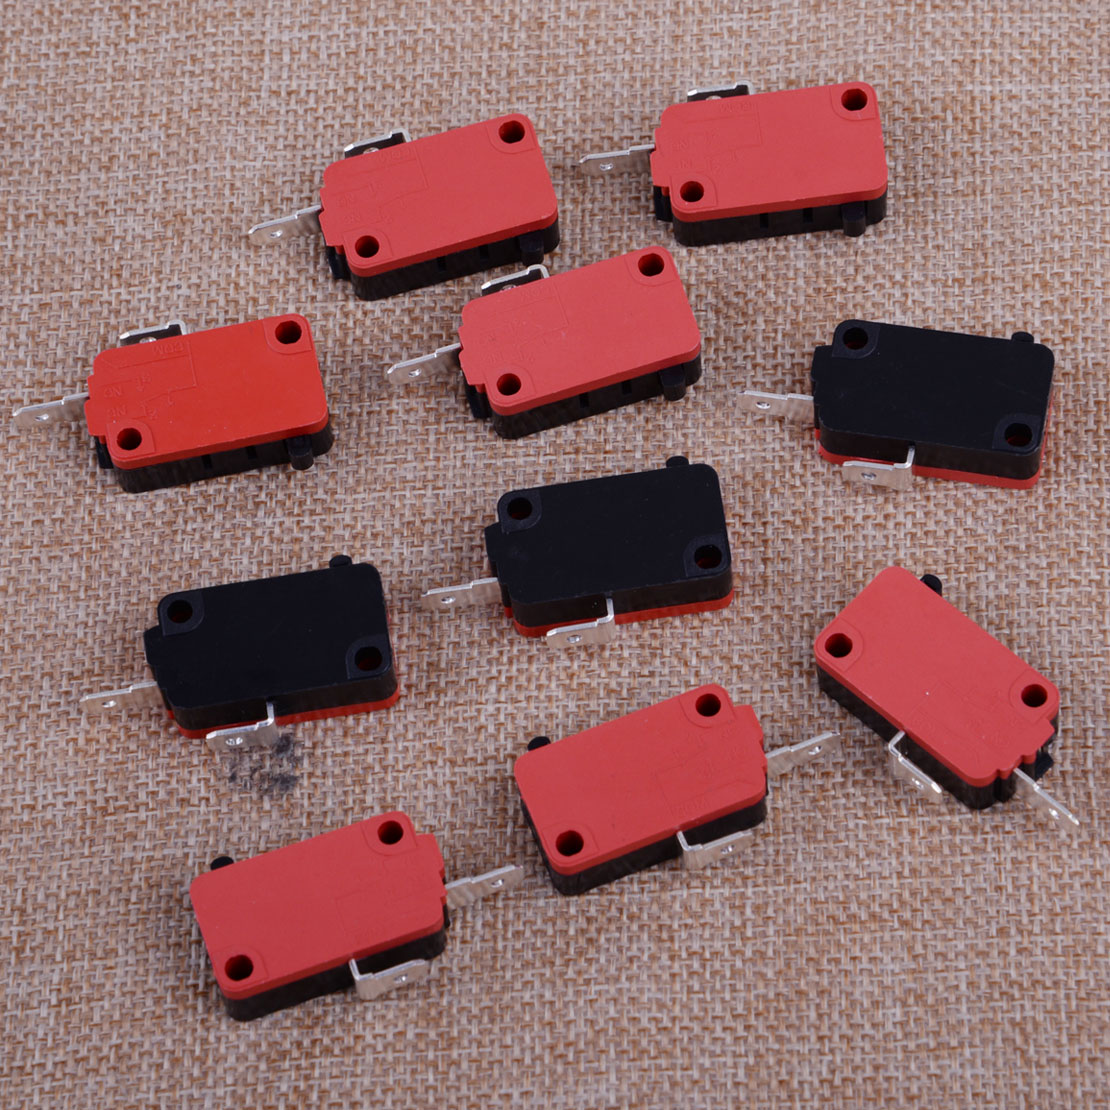 LETAOSK New 10pcs Black & Red & Silver  Microwave Oven Door Switch Fit For LG GE Starion SZM-V16-FD-63 SZM-V16-FA-63